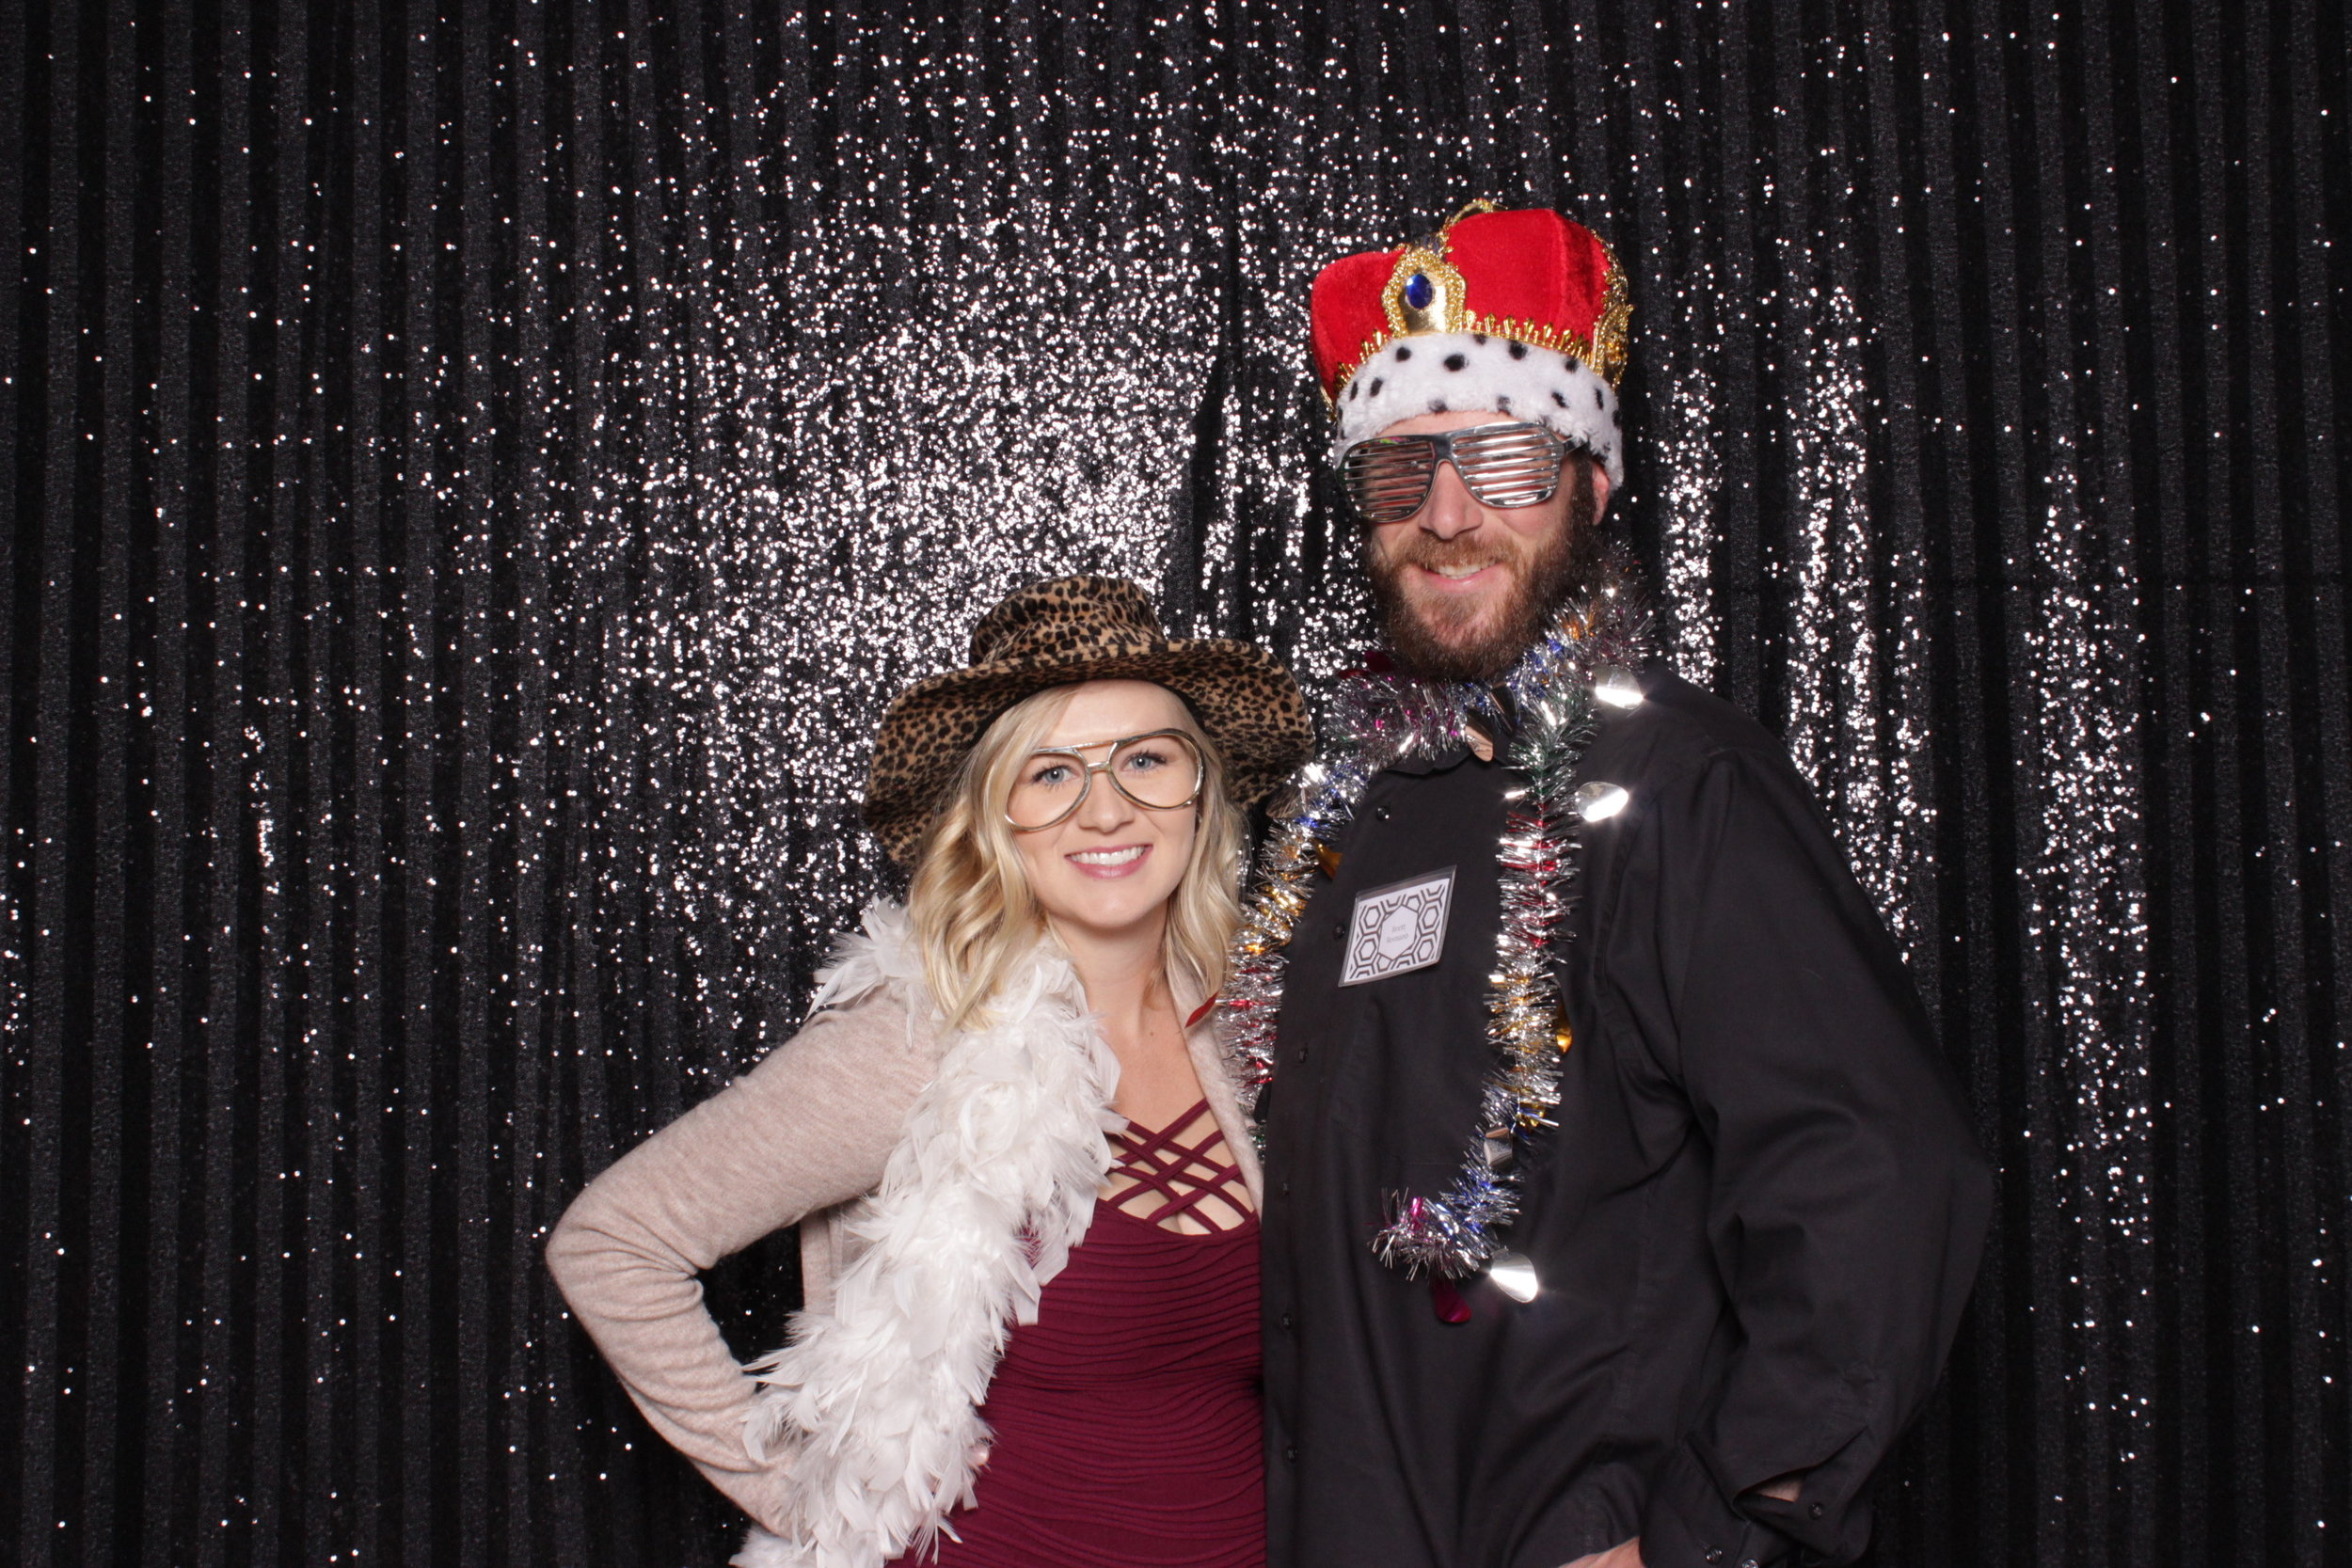 Chico-photo-booth-rental-parties